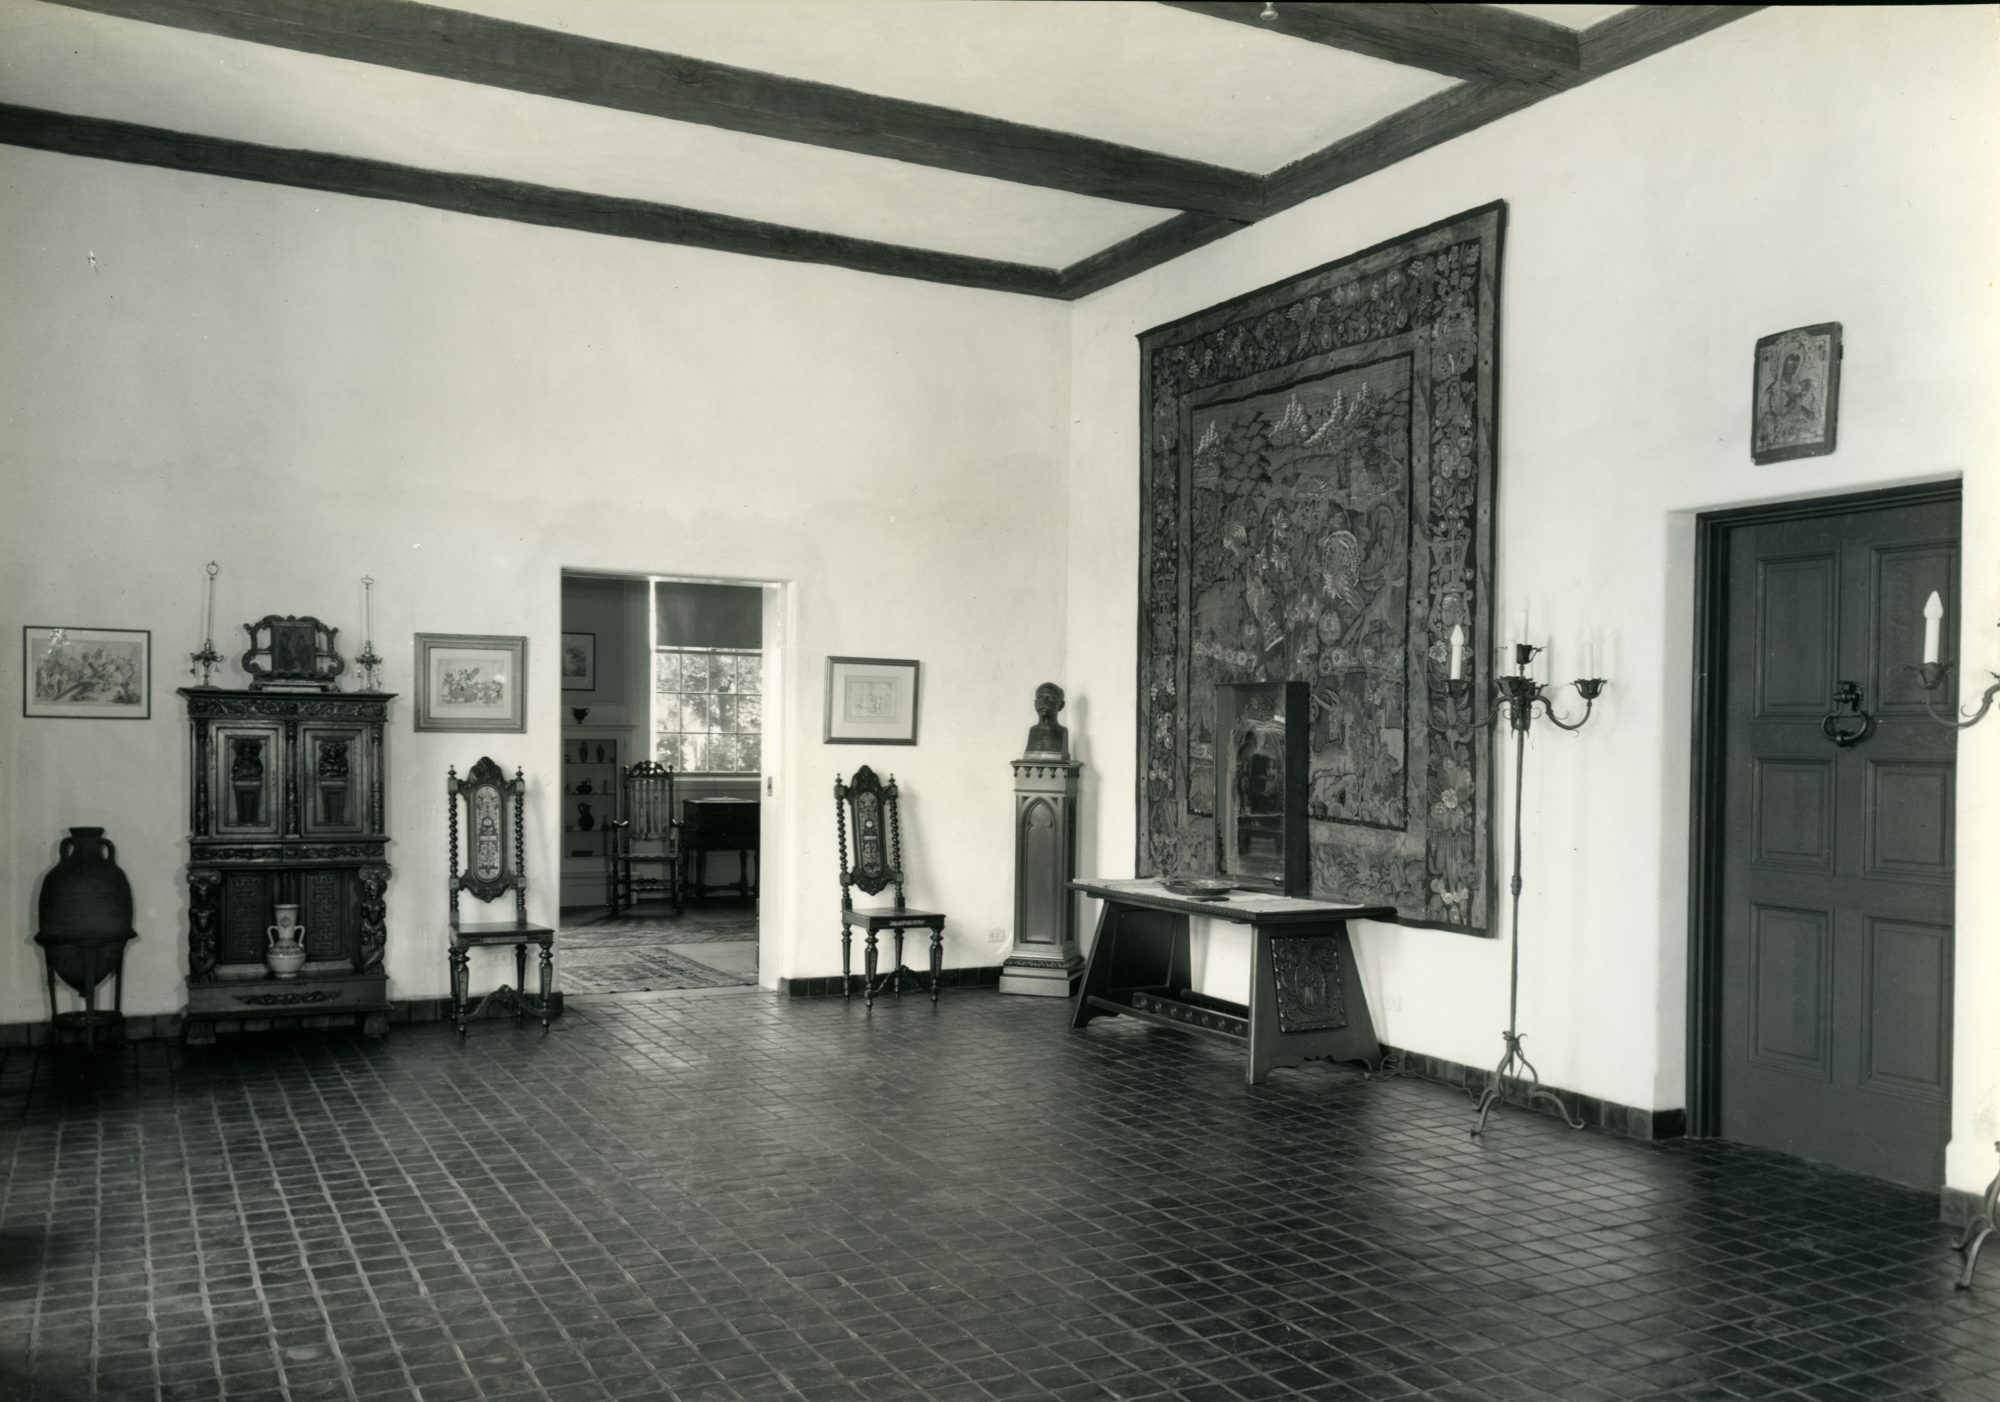 Photo of Blashfield gallery from the Lawrence Hall archives.